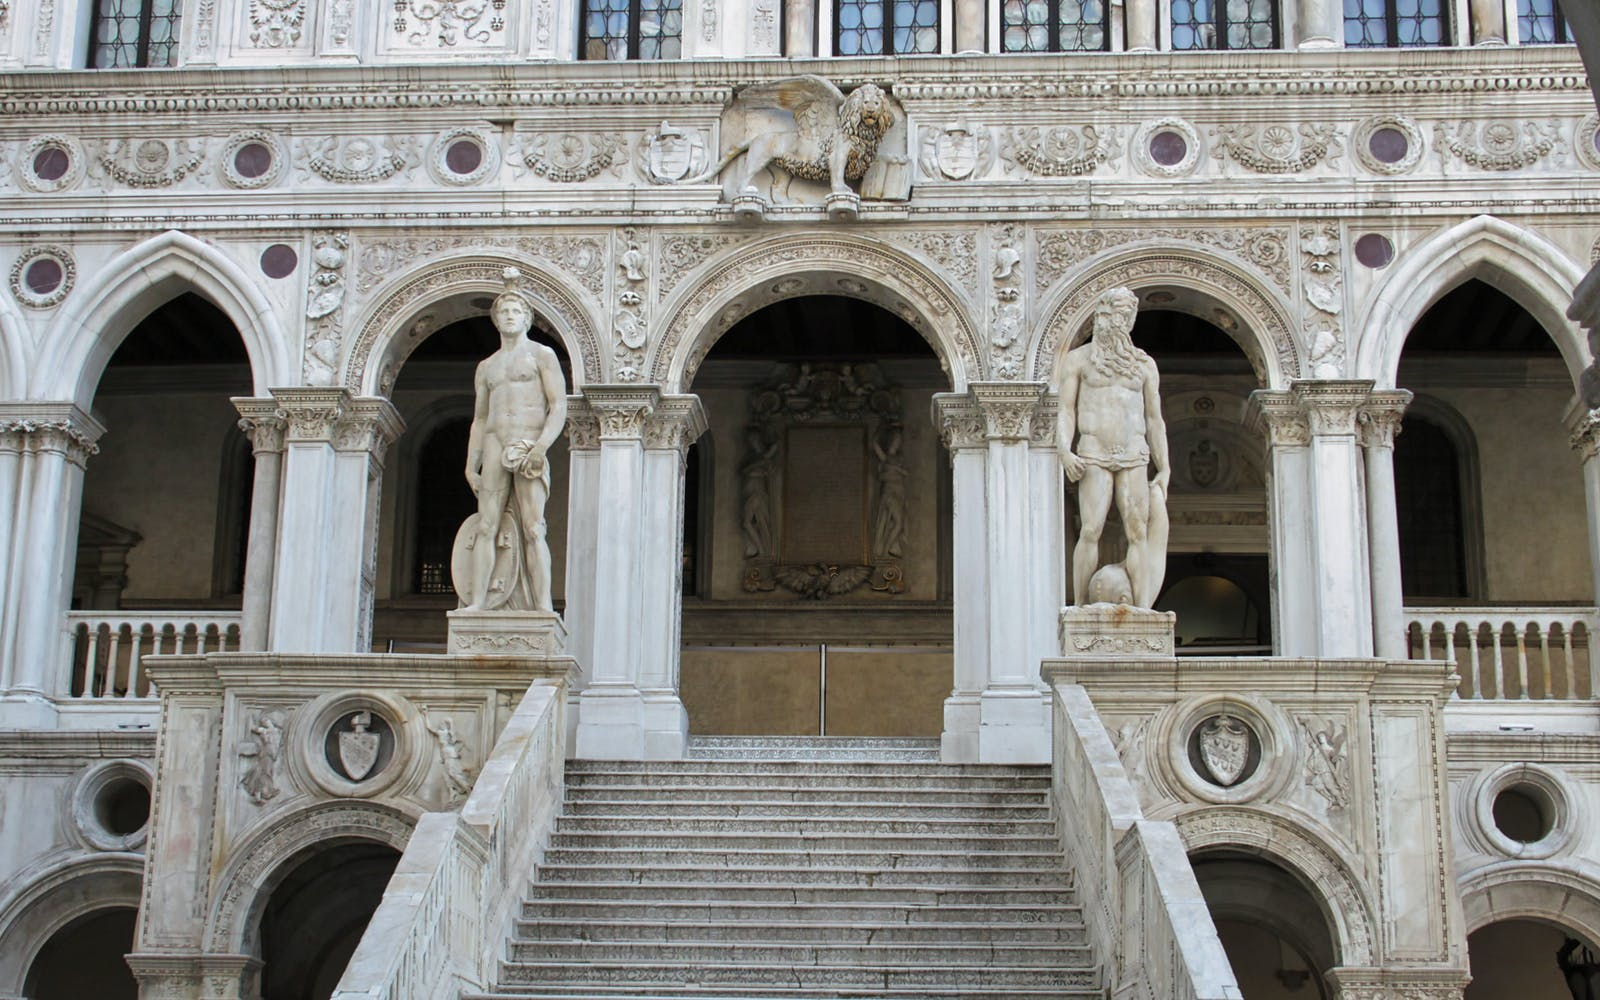 Skip The Line: Doge's Palace Tickets and Guide Book